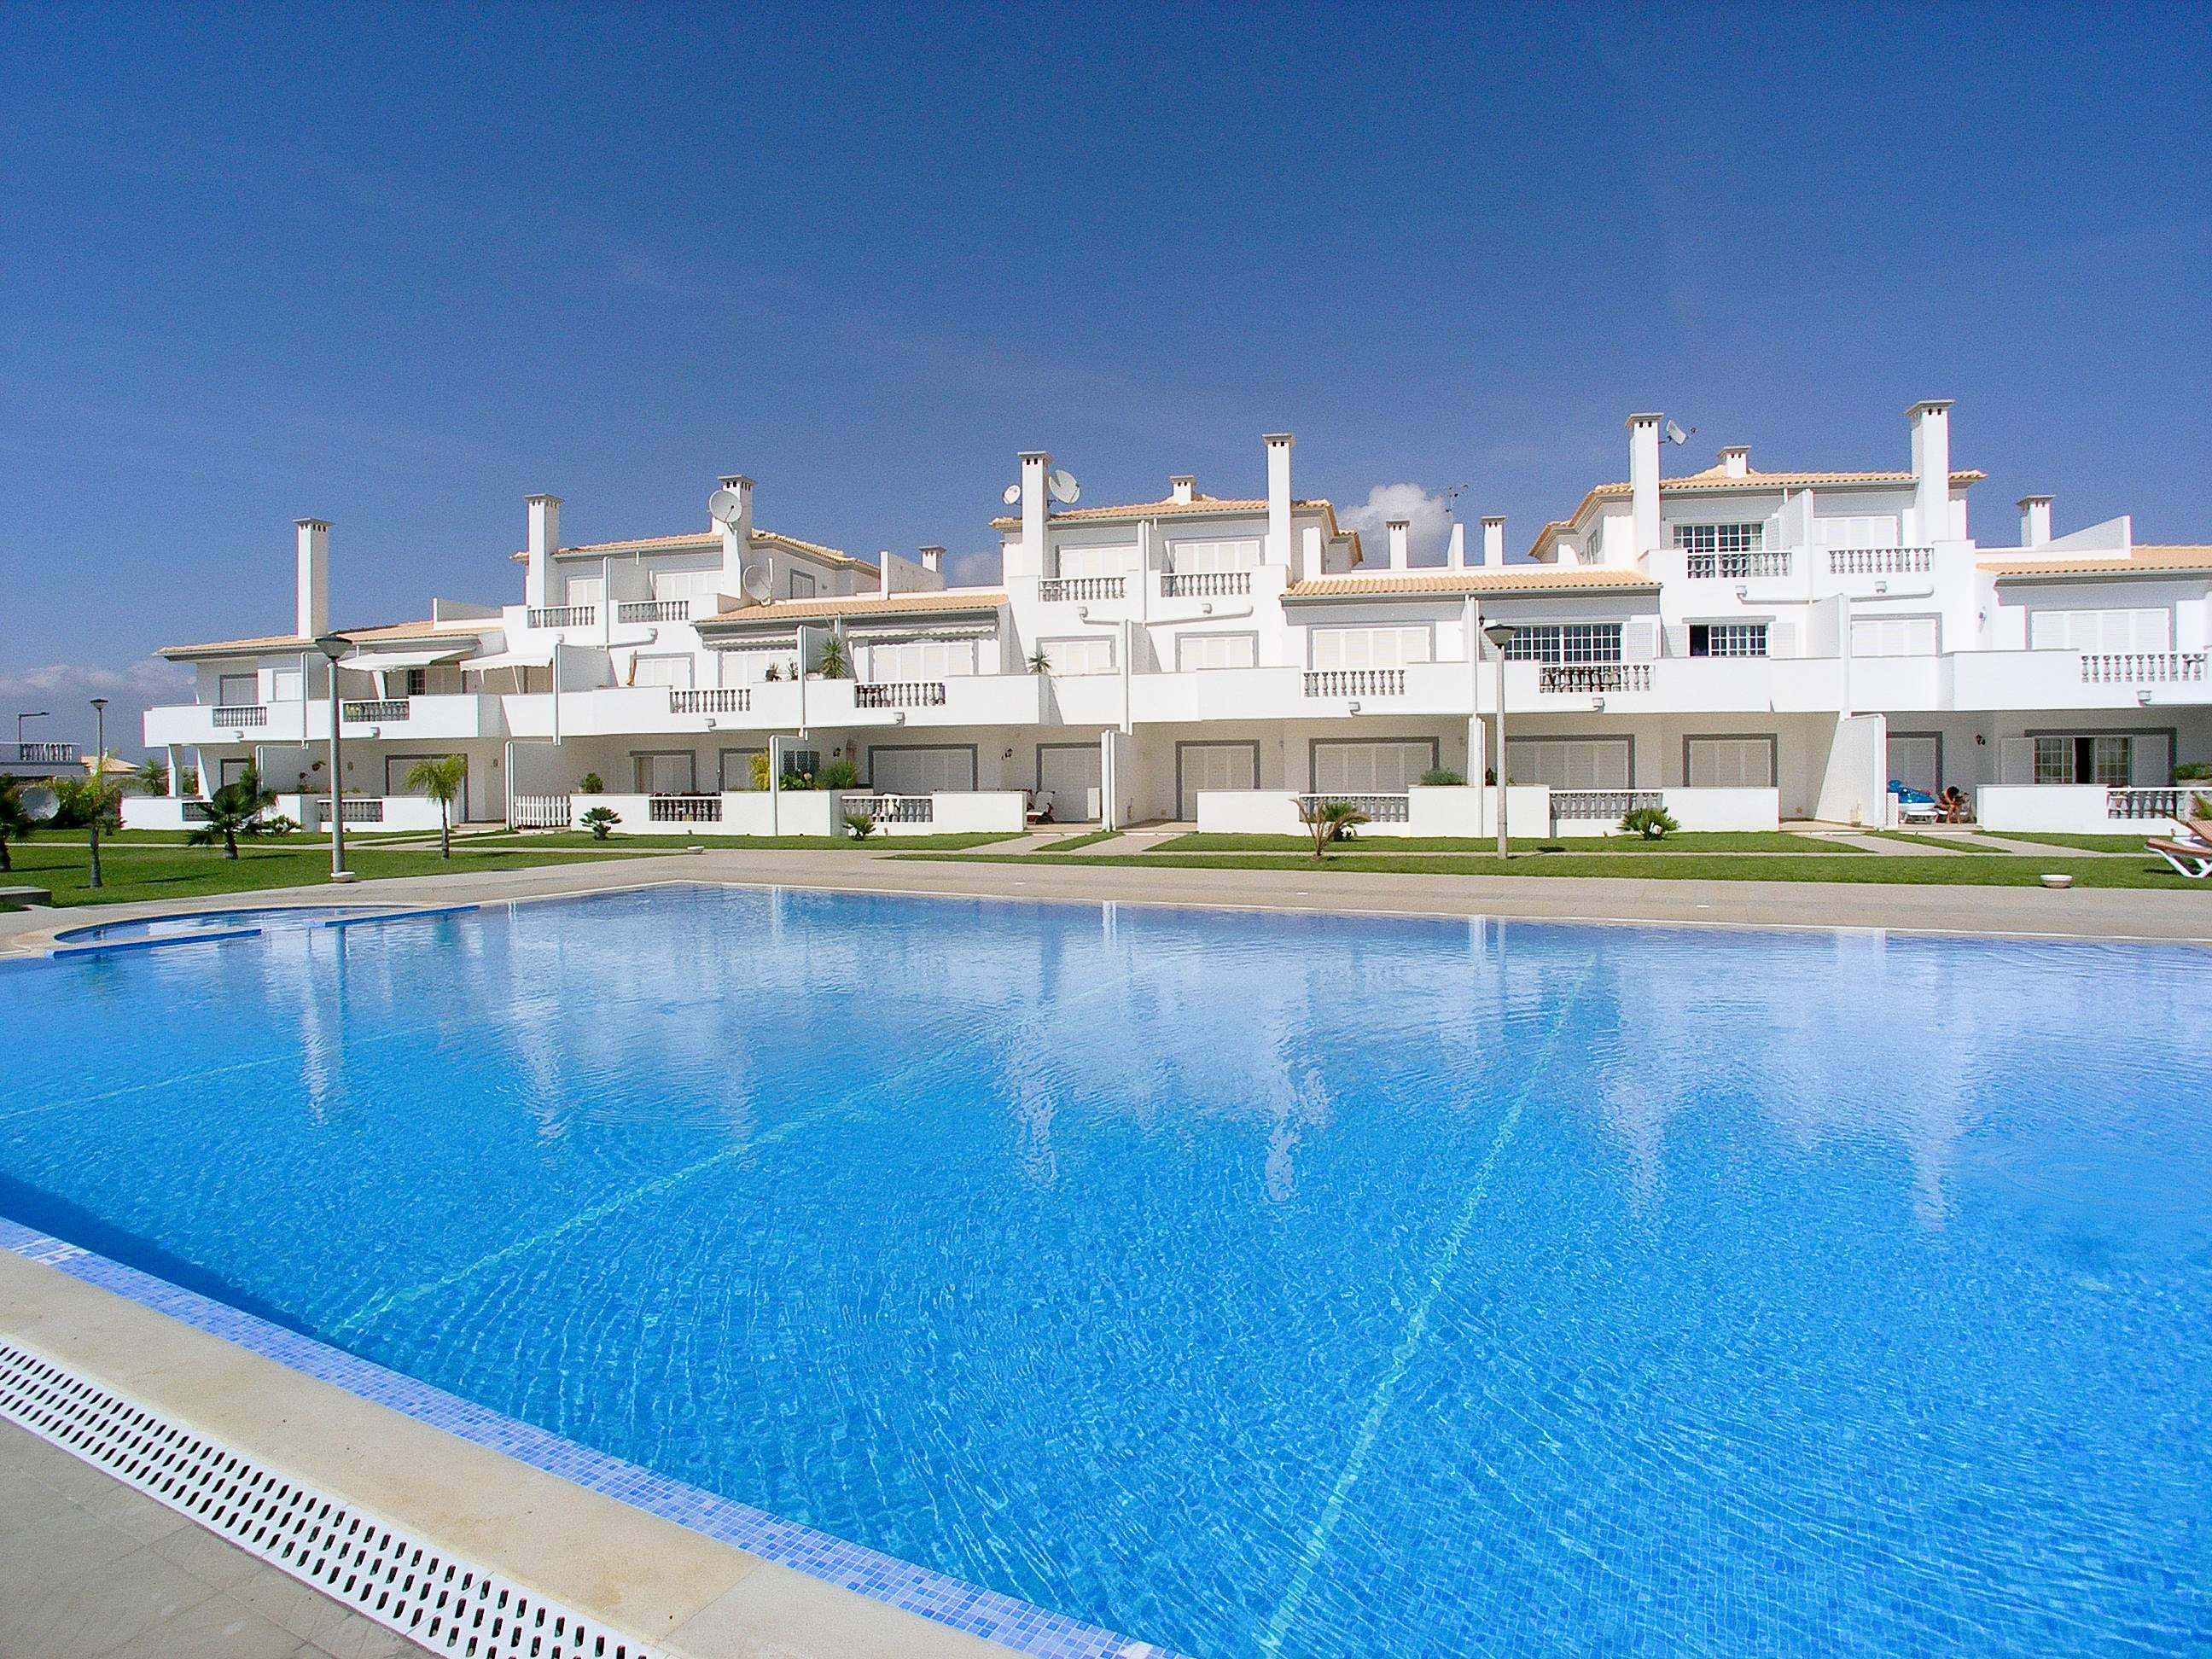 Apt O Monte, For Up to 4 Persons, 2 bedroom apartment in Gale, Vale da Parra and Guia, Algarve Photo #1